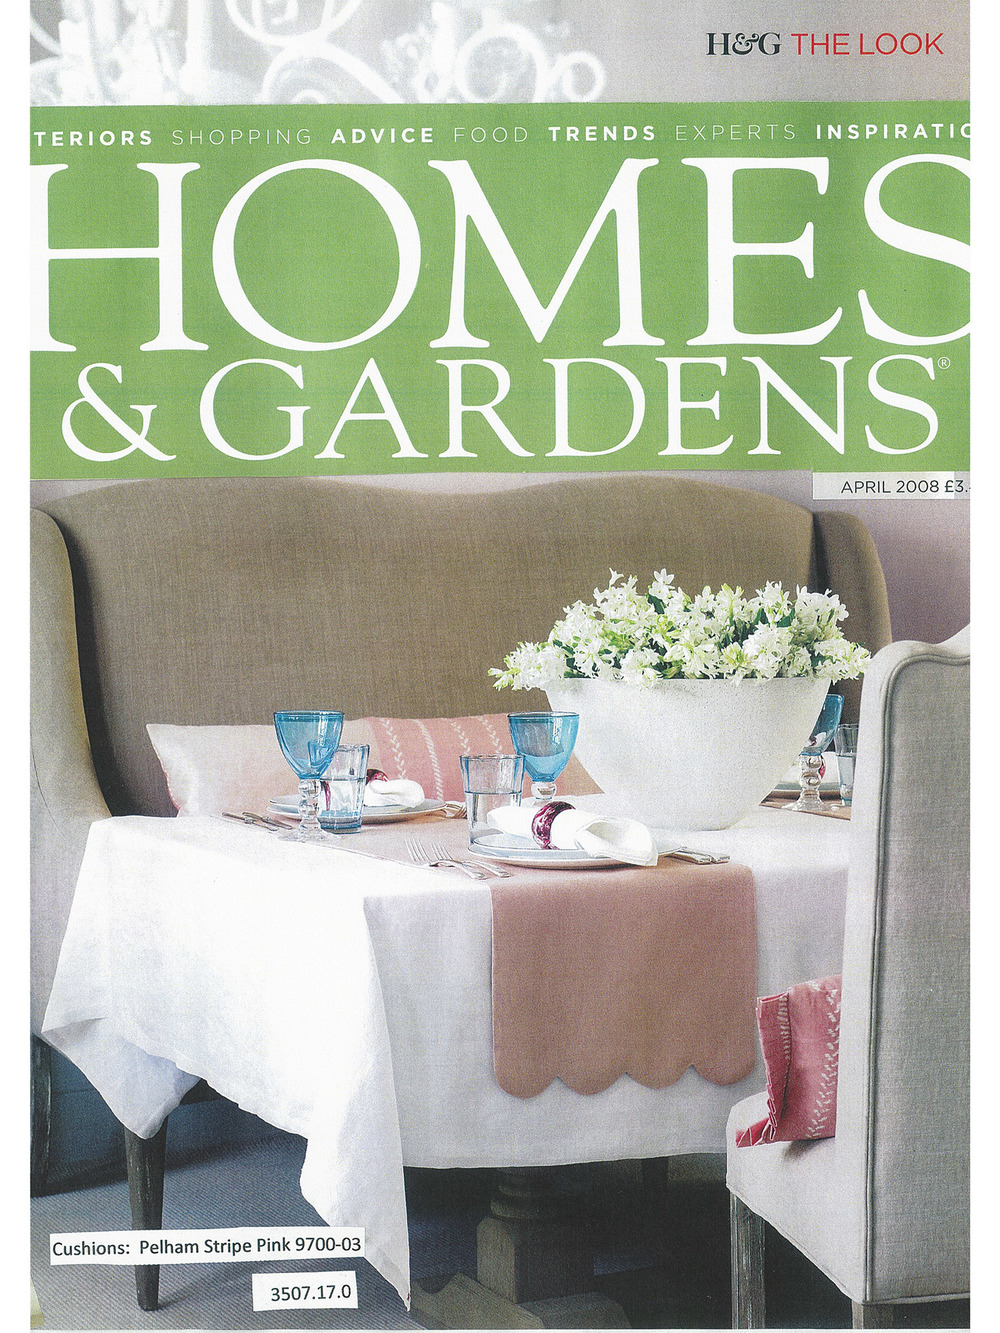 2008 April-Homes & Gardens.jpeg